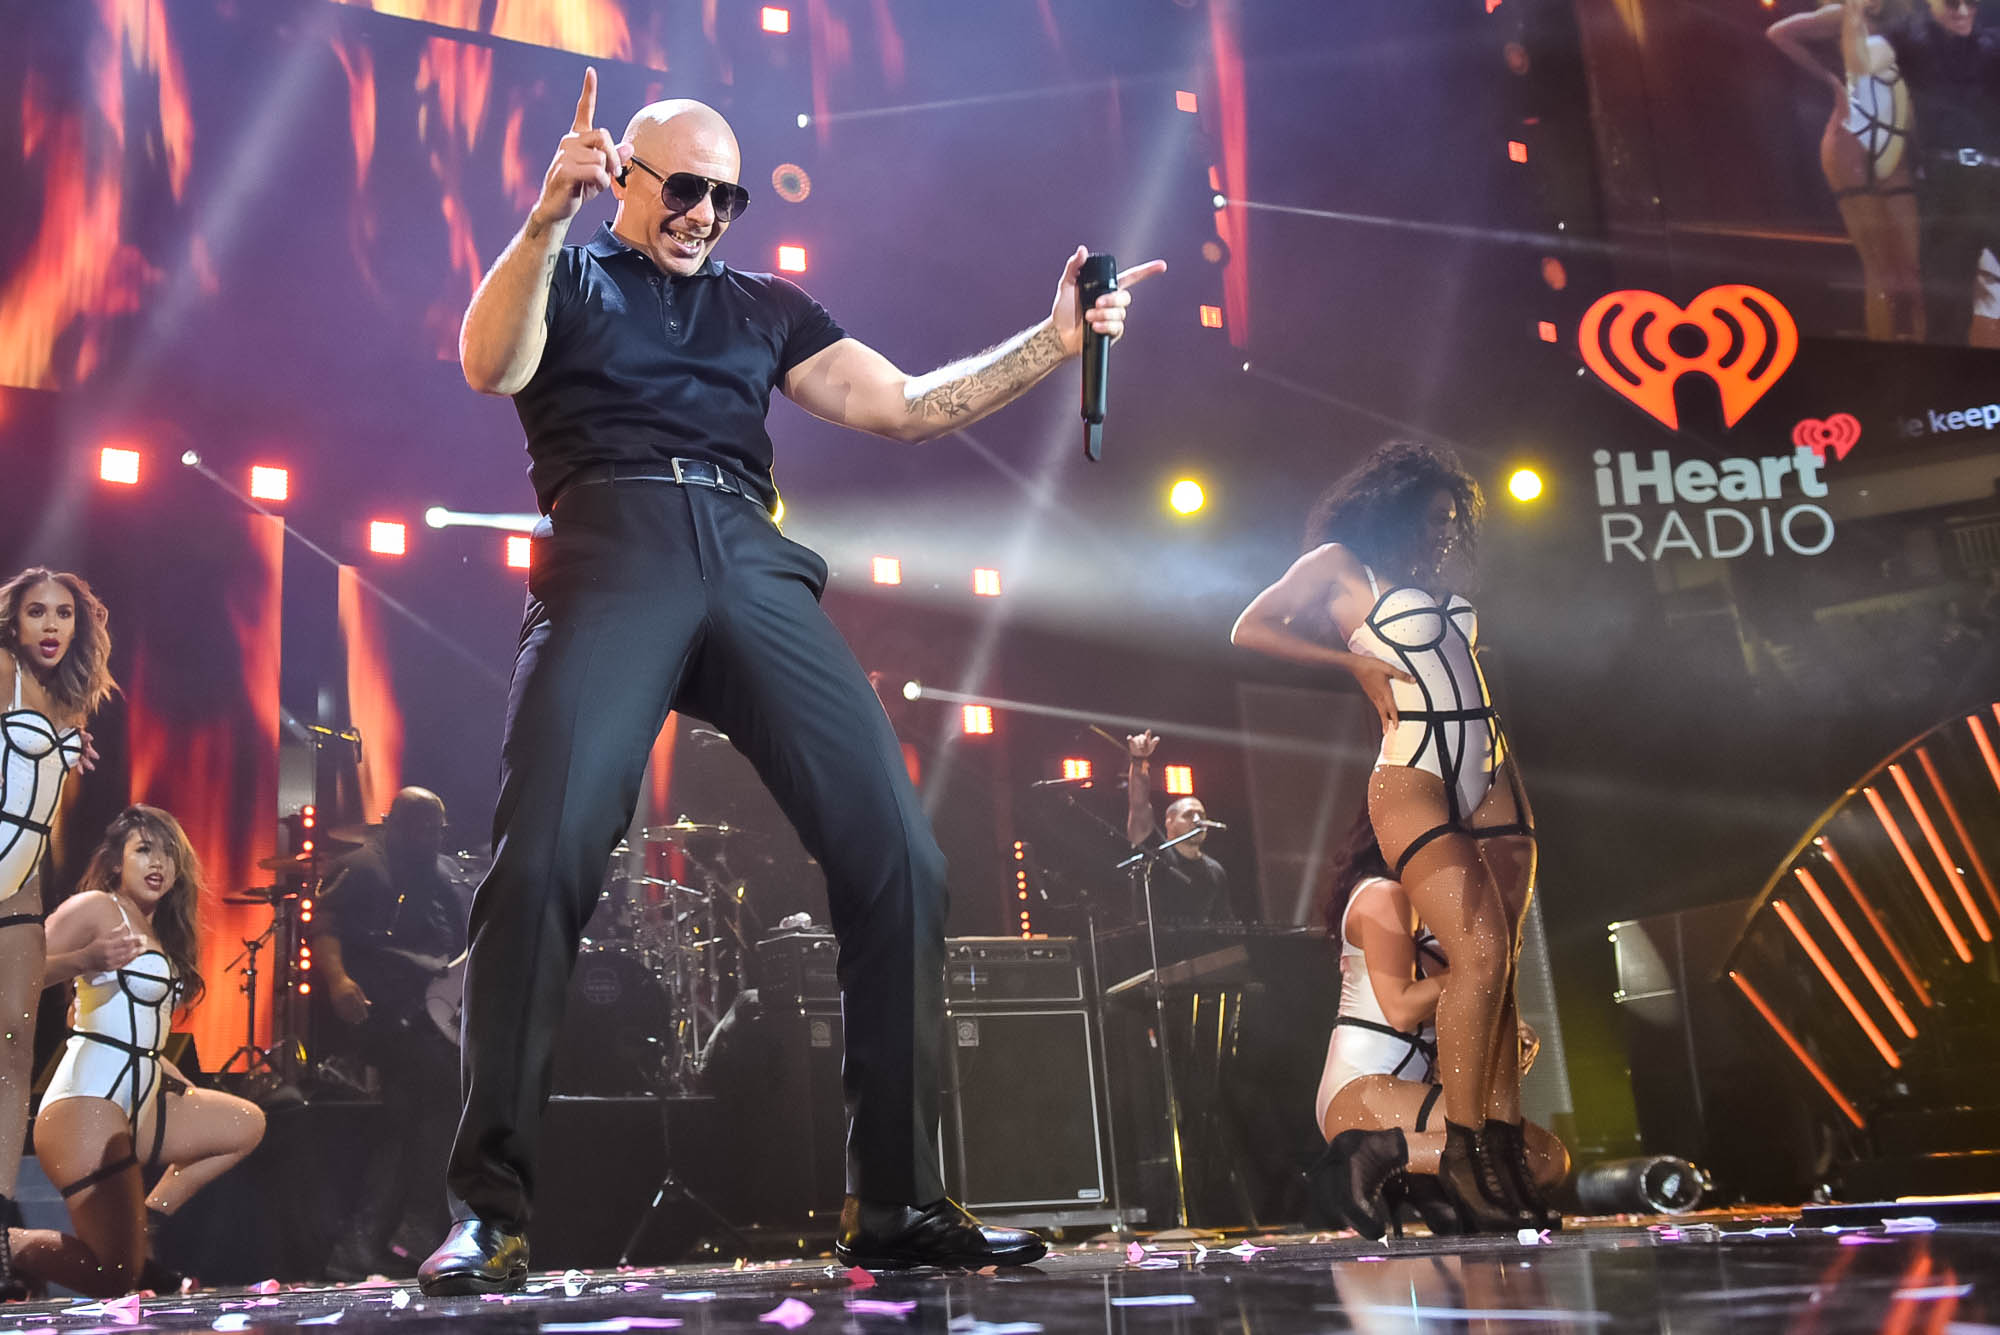 Energy always up at #iHeartFestival! Have fun in Vegas this year! https://t.co/YvDR5Hwqj8